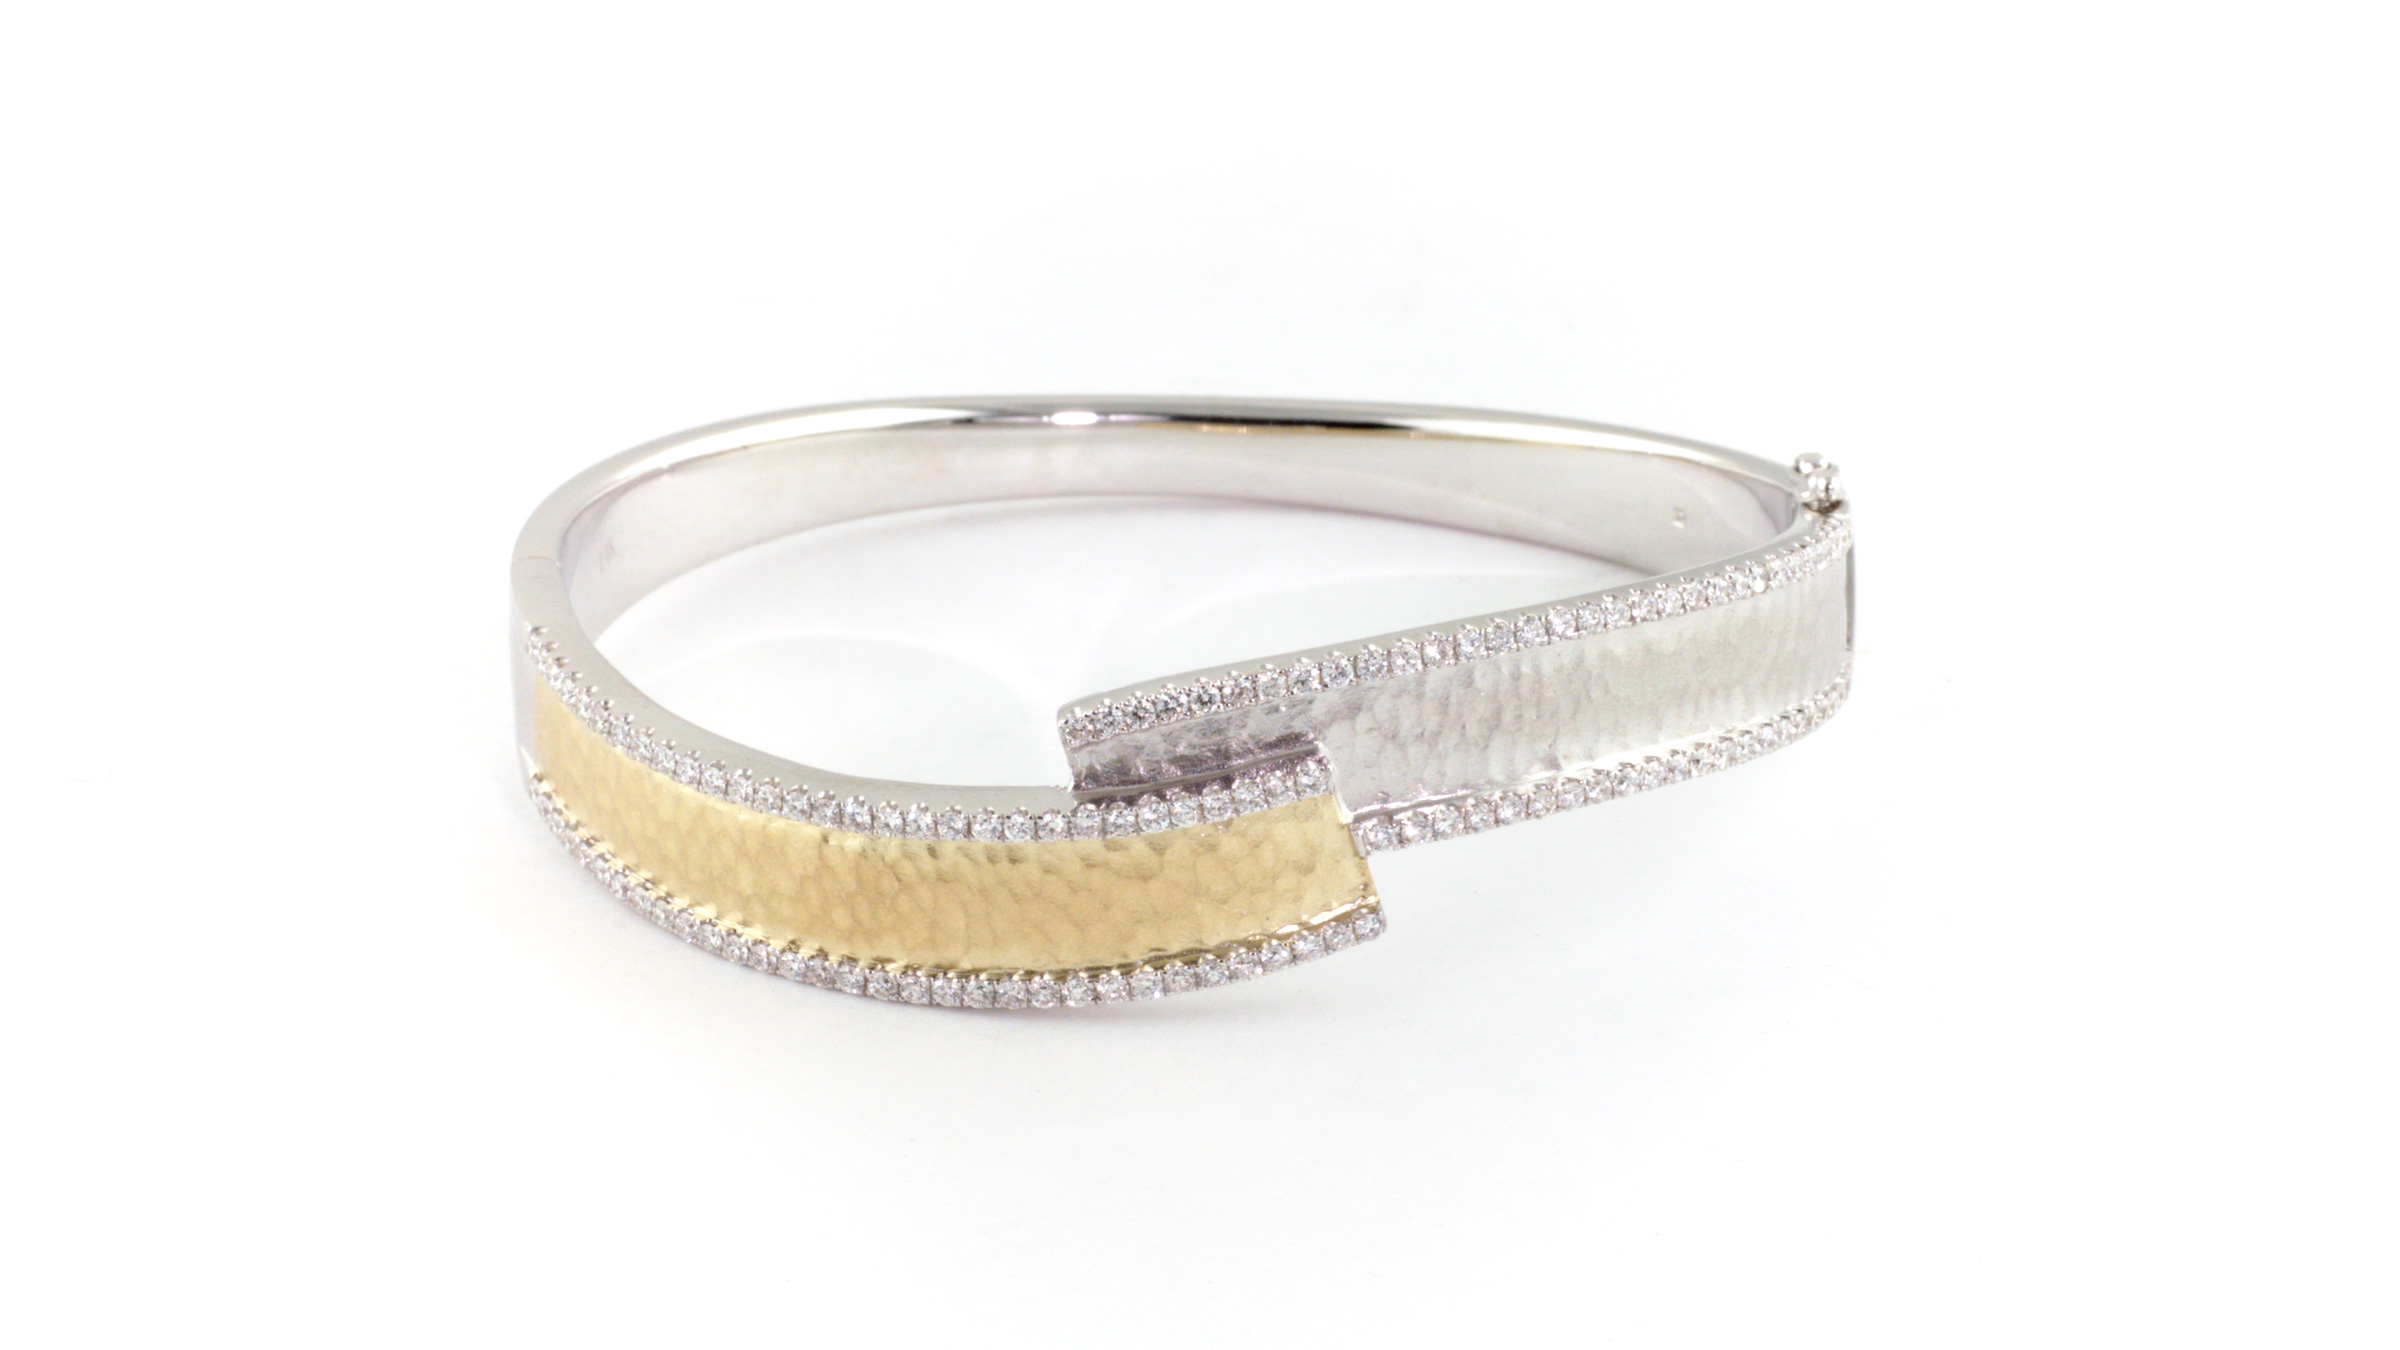 Two tone 14K yellow and white gold diamond bracelet.